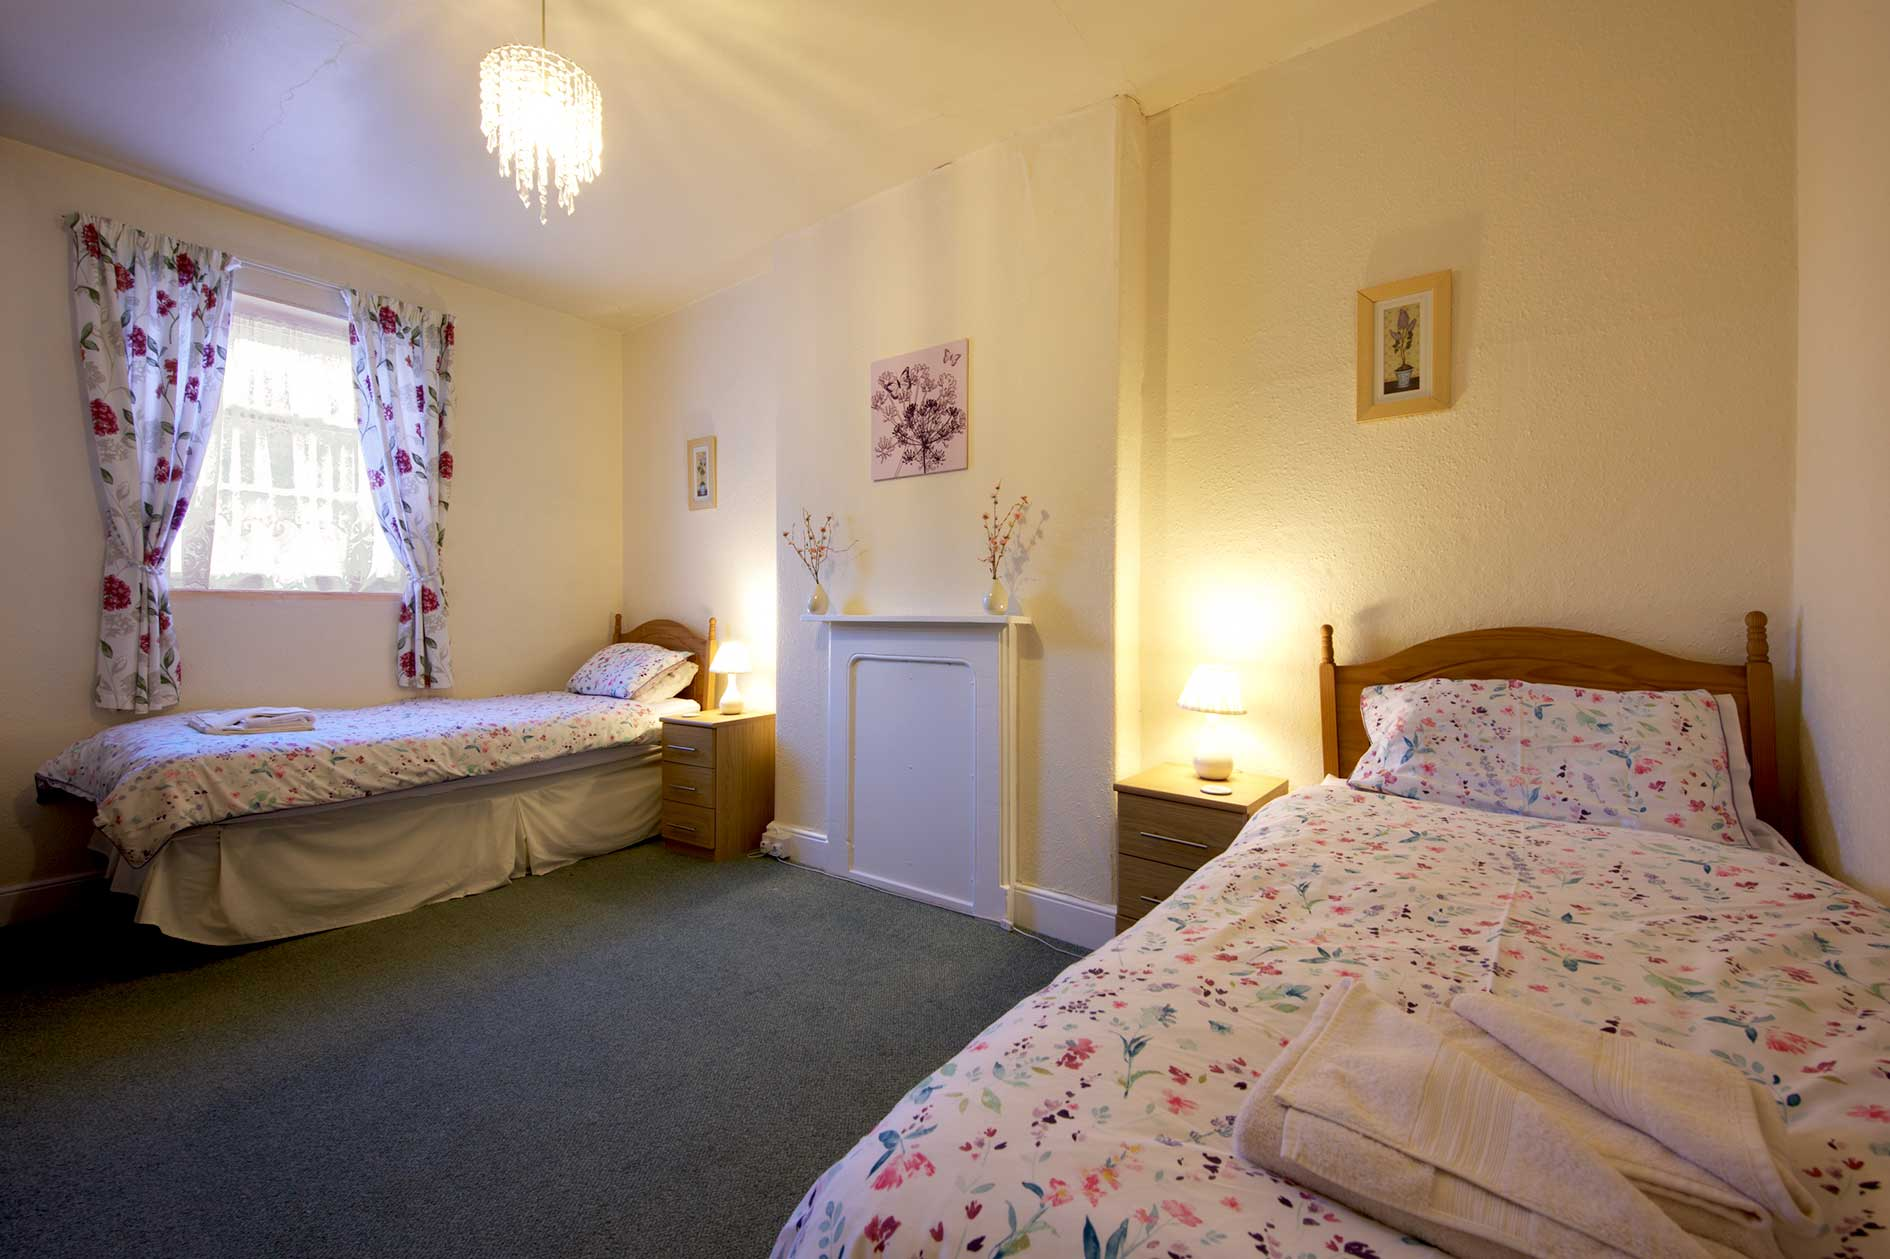 Lit Bedroom With Two Single Beds With Floral Covers And Wooden Furniture